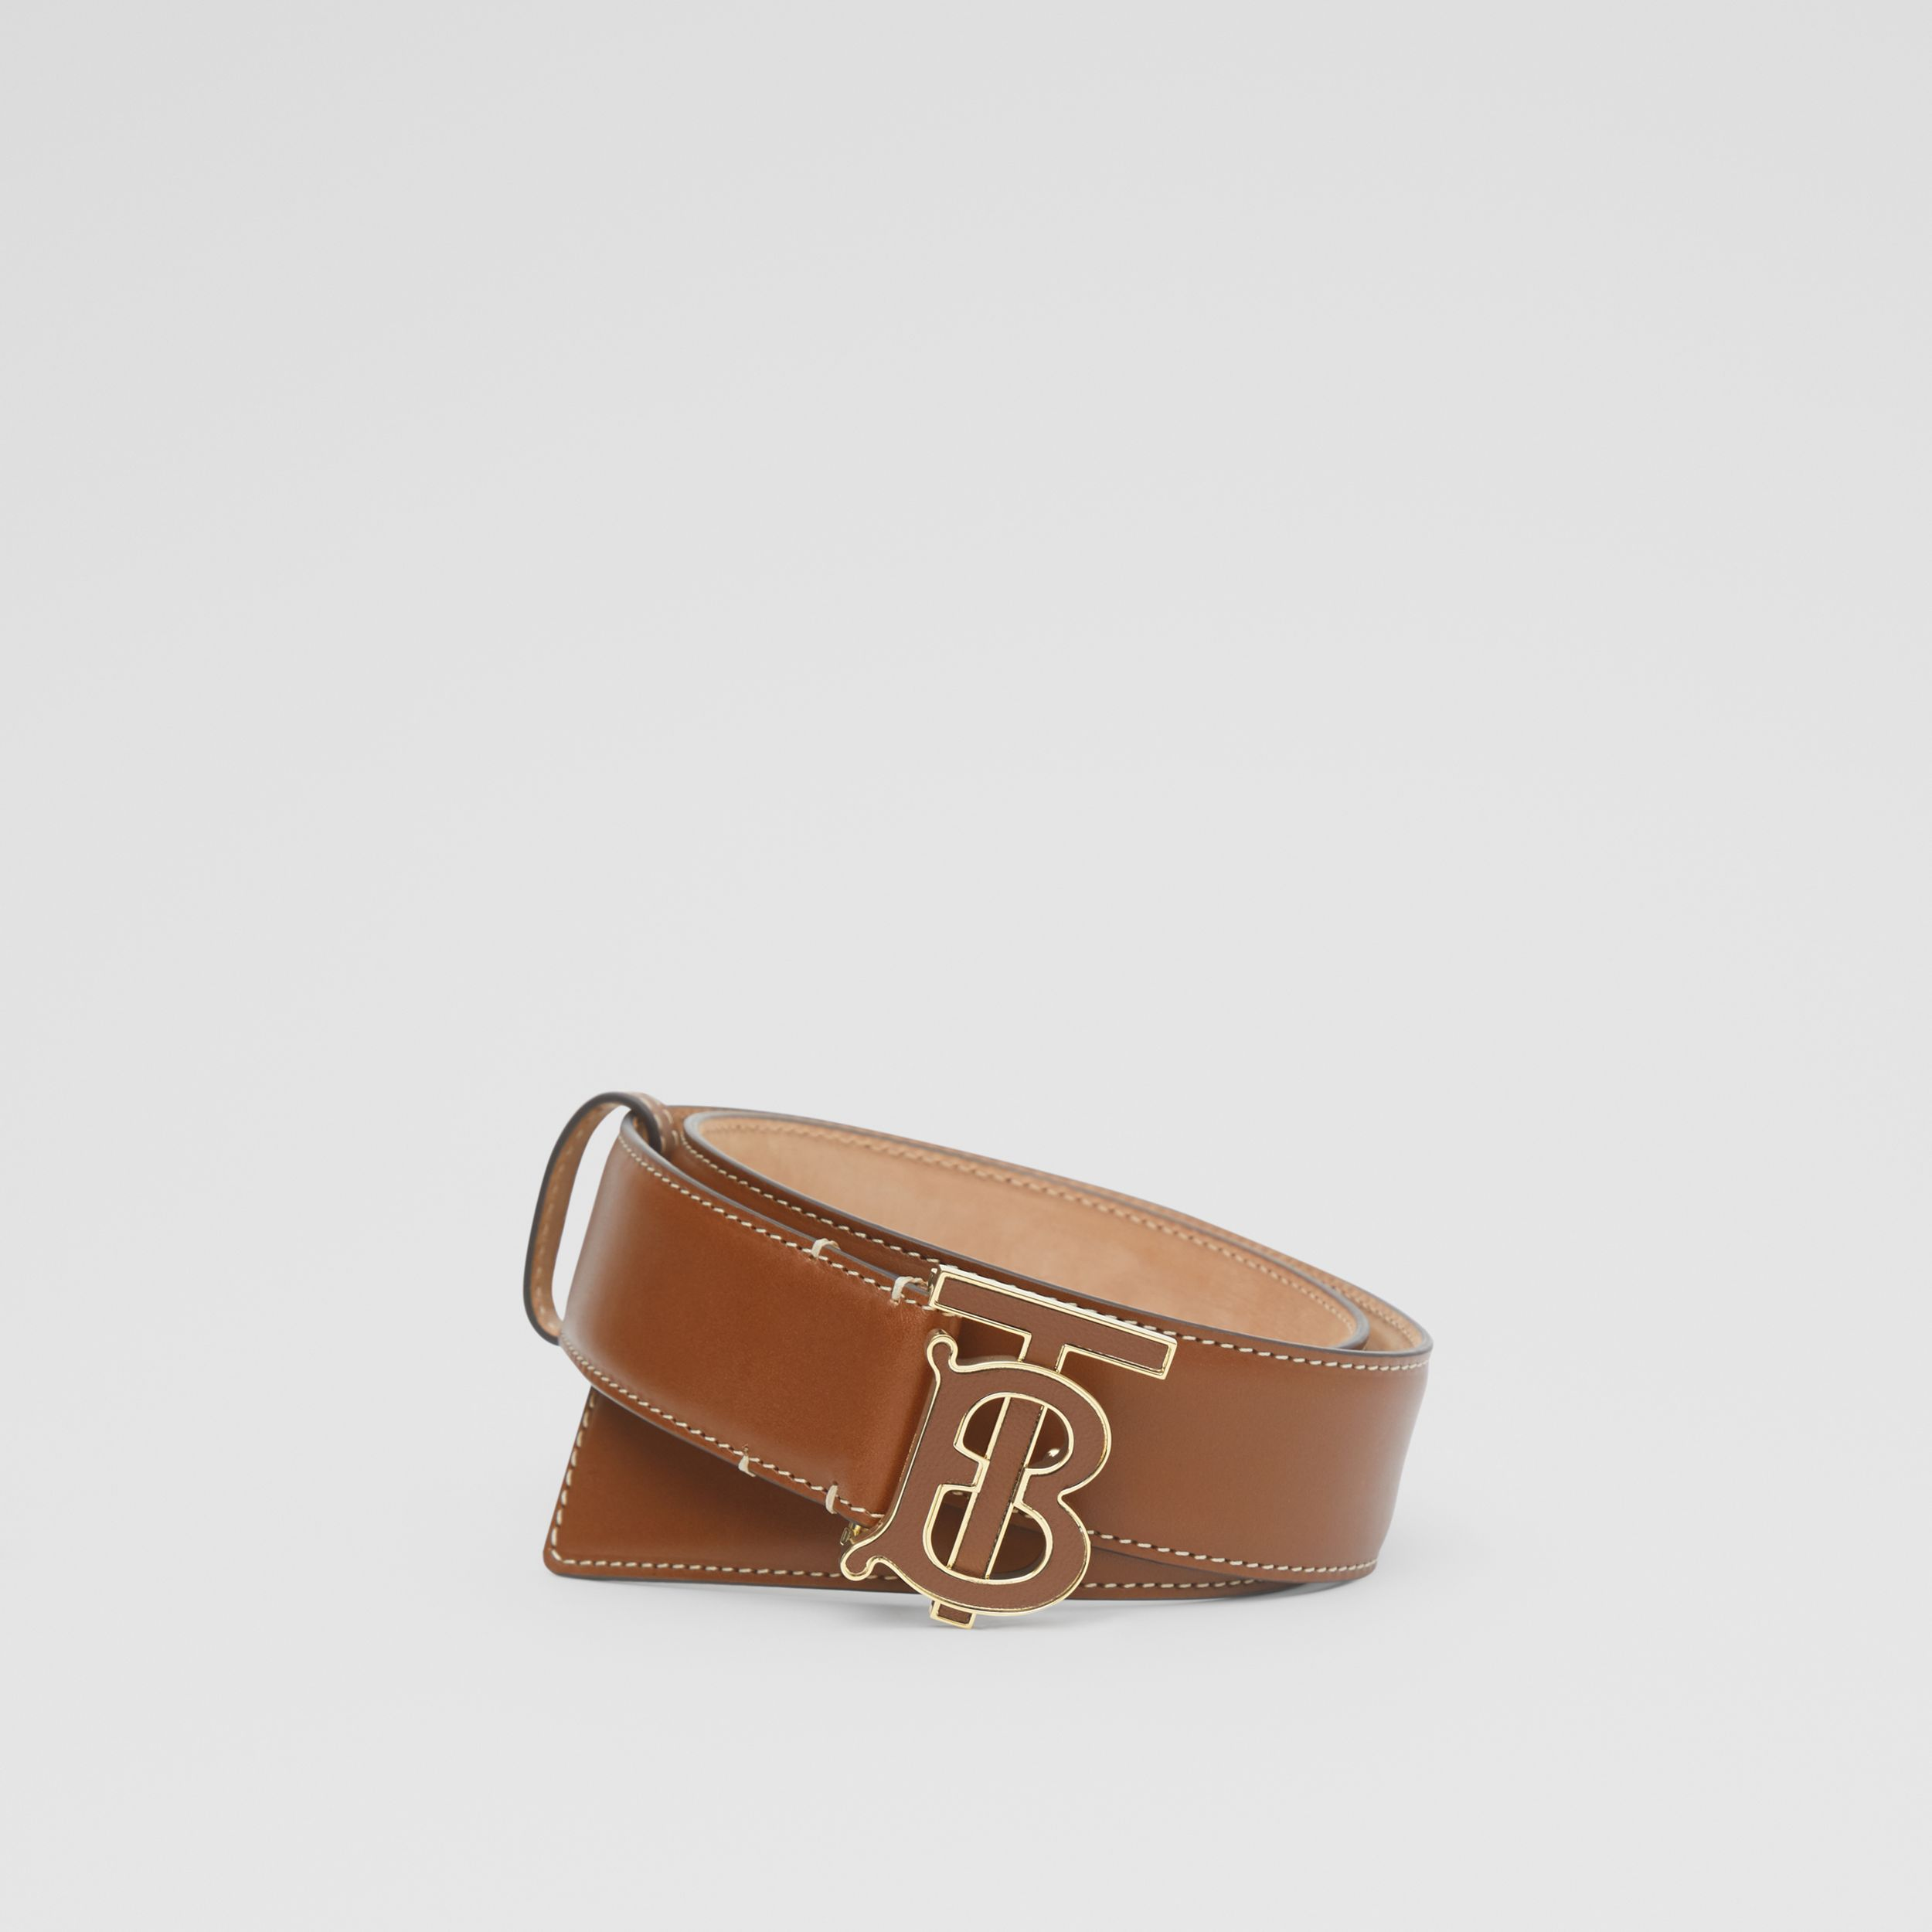 Monogram Motif Leather Belt in Tan - Women | Burberry Hong Kong S.A.R. - 1